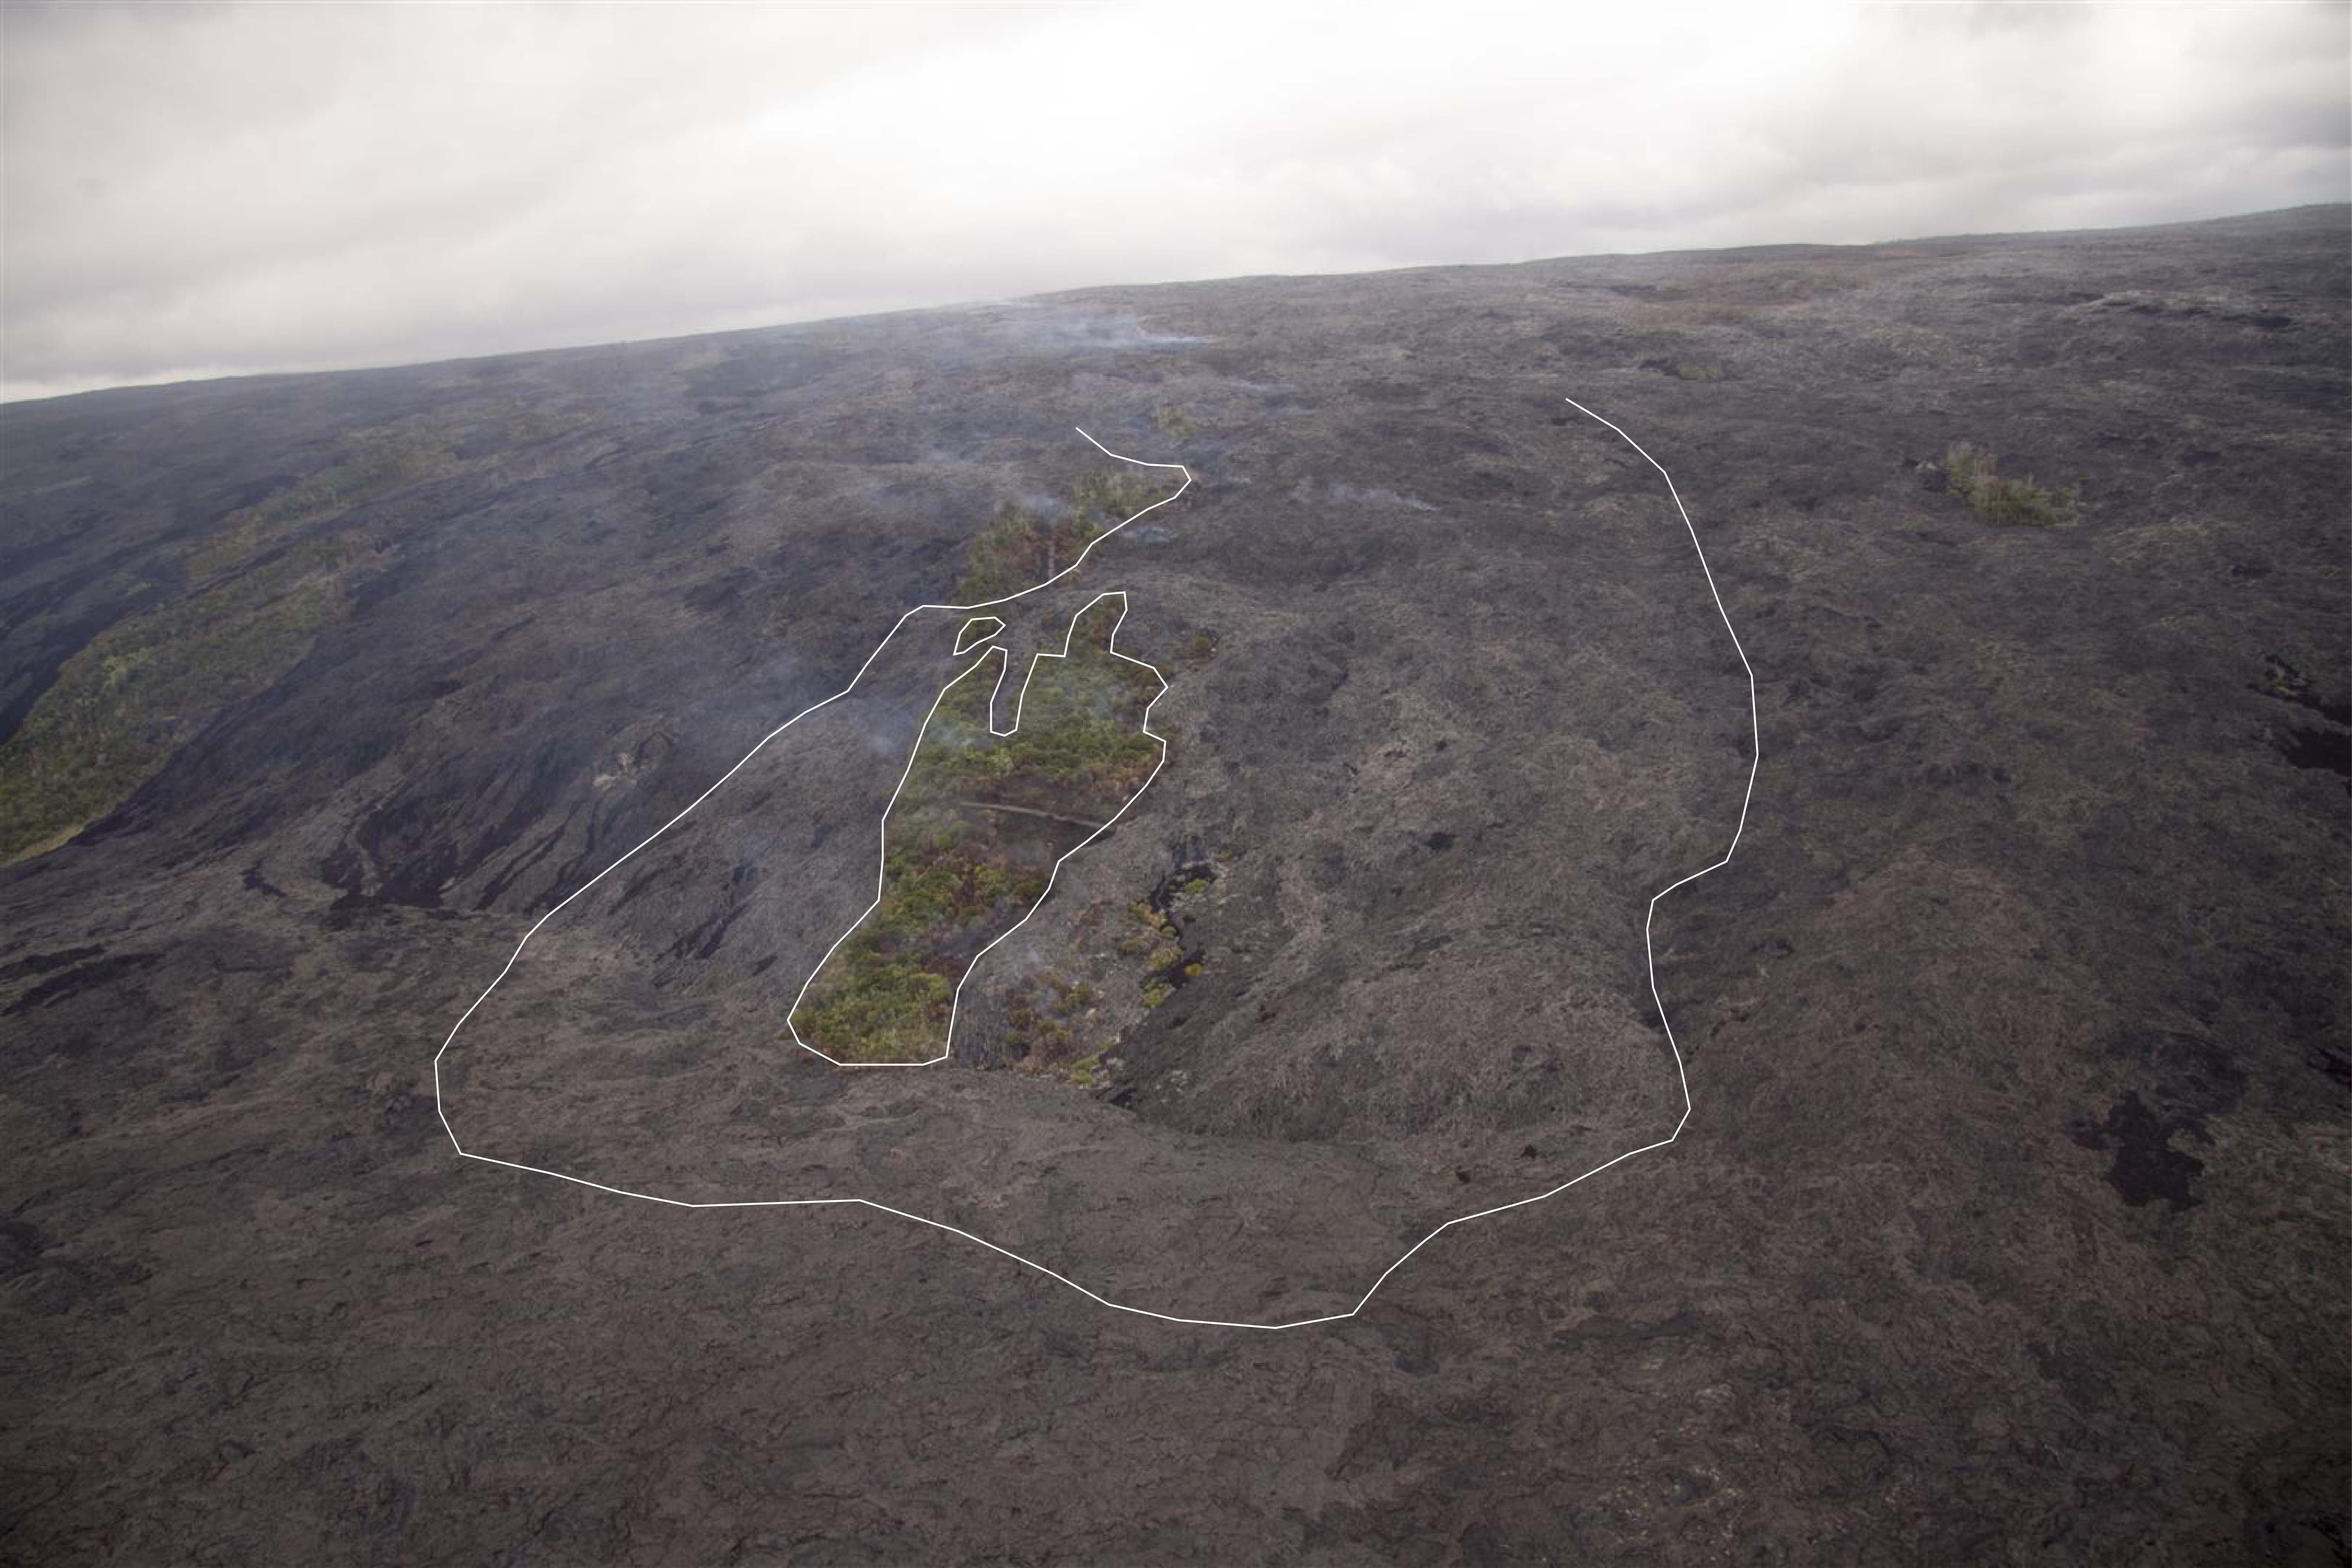 USGS photo showing the outline of the flow down the pali